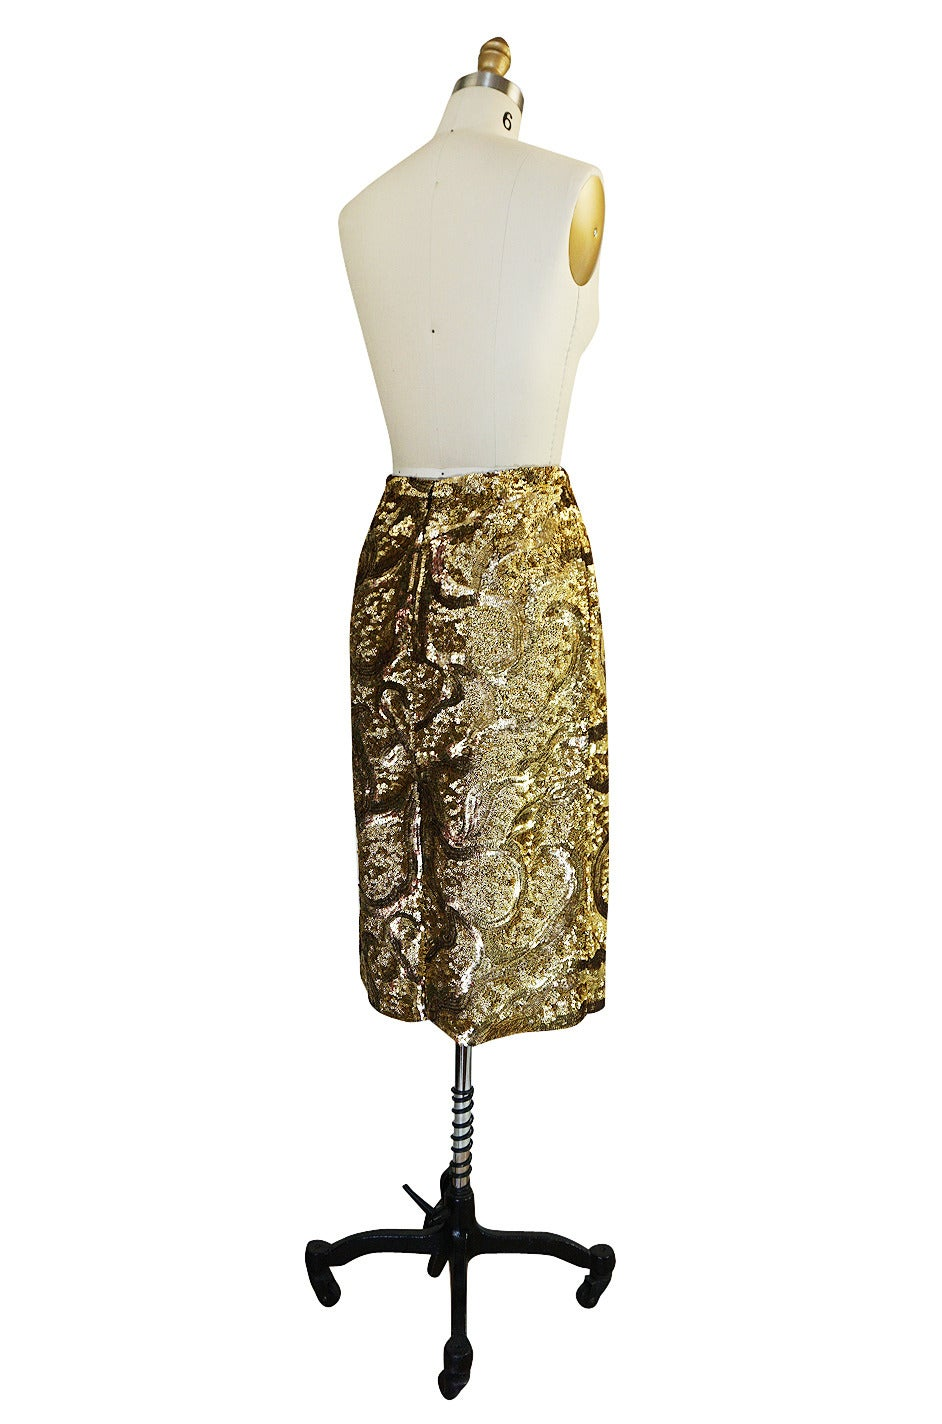 If you have been looking for that perfect statement skirt, look no further as this may well be it. From the 2014 Resort collection this muted gold, hammered sequin covered skirt is fantastic. Style dot com said of this collection: